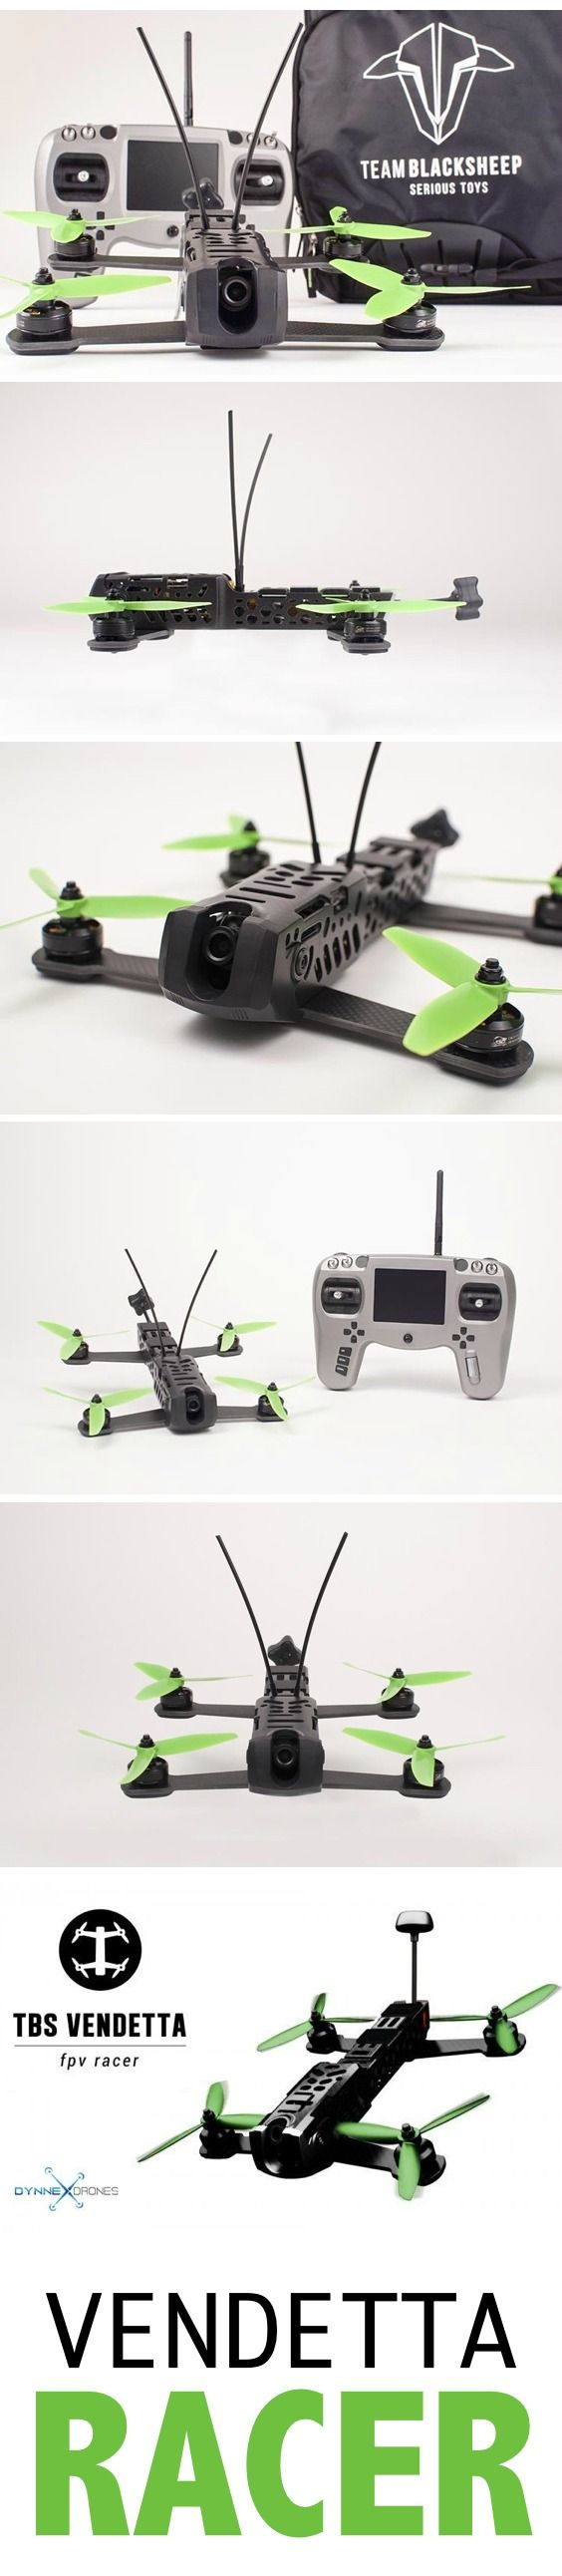 Drones are AWESOME! Put your Team Blacksheep Vendetta into flight today! Start t...